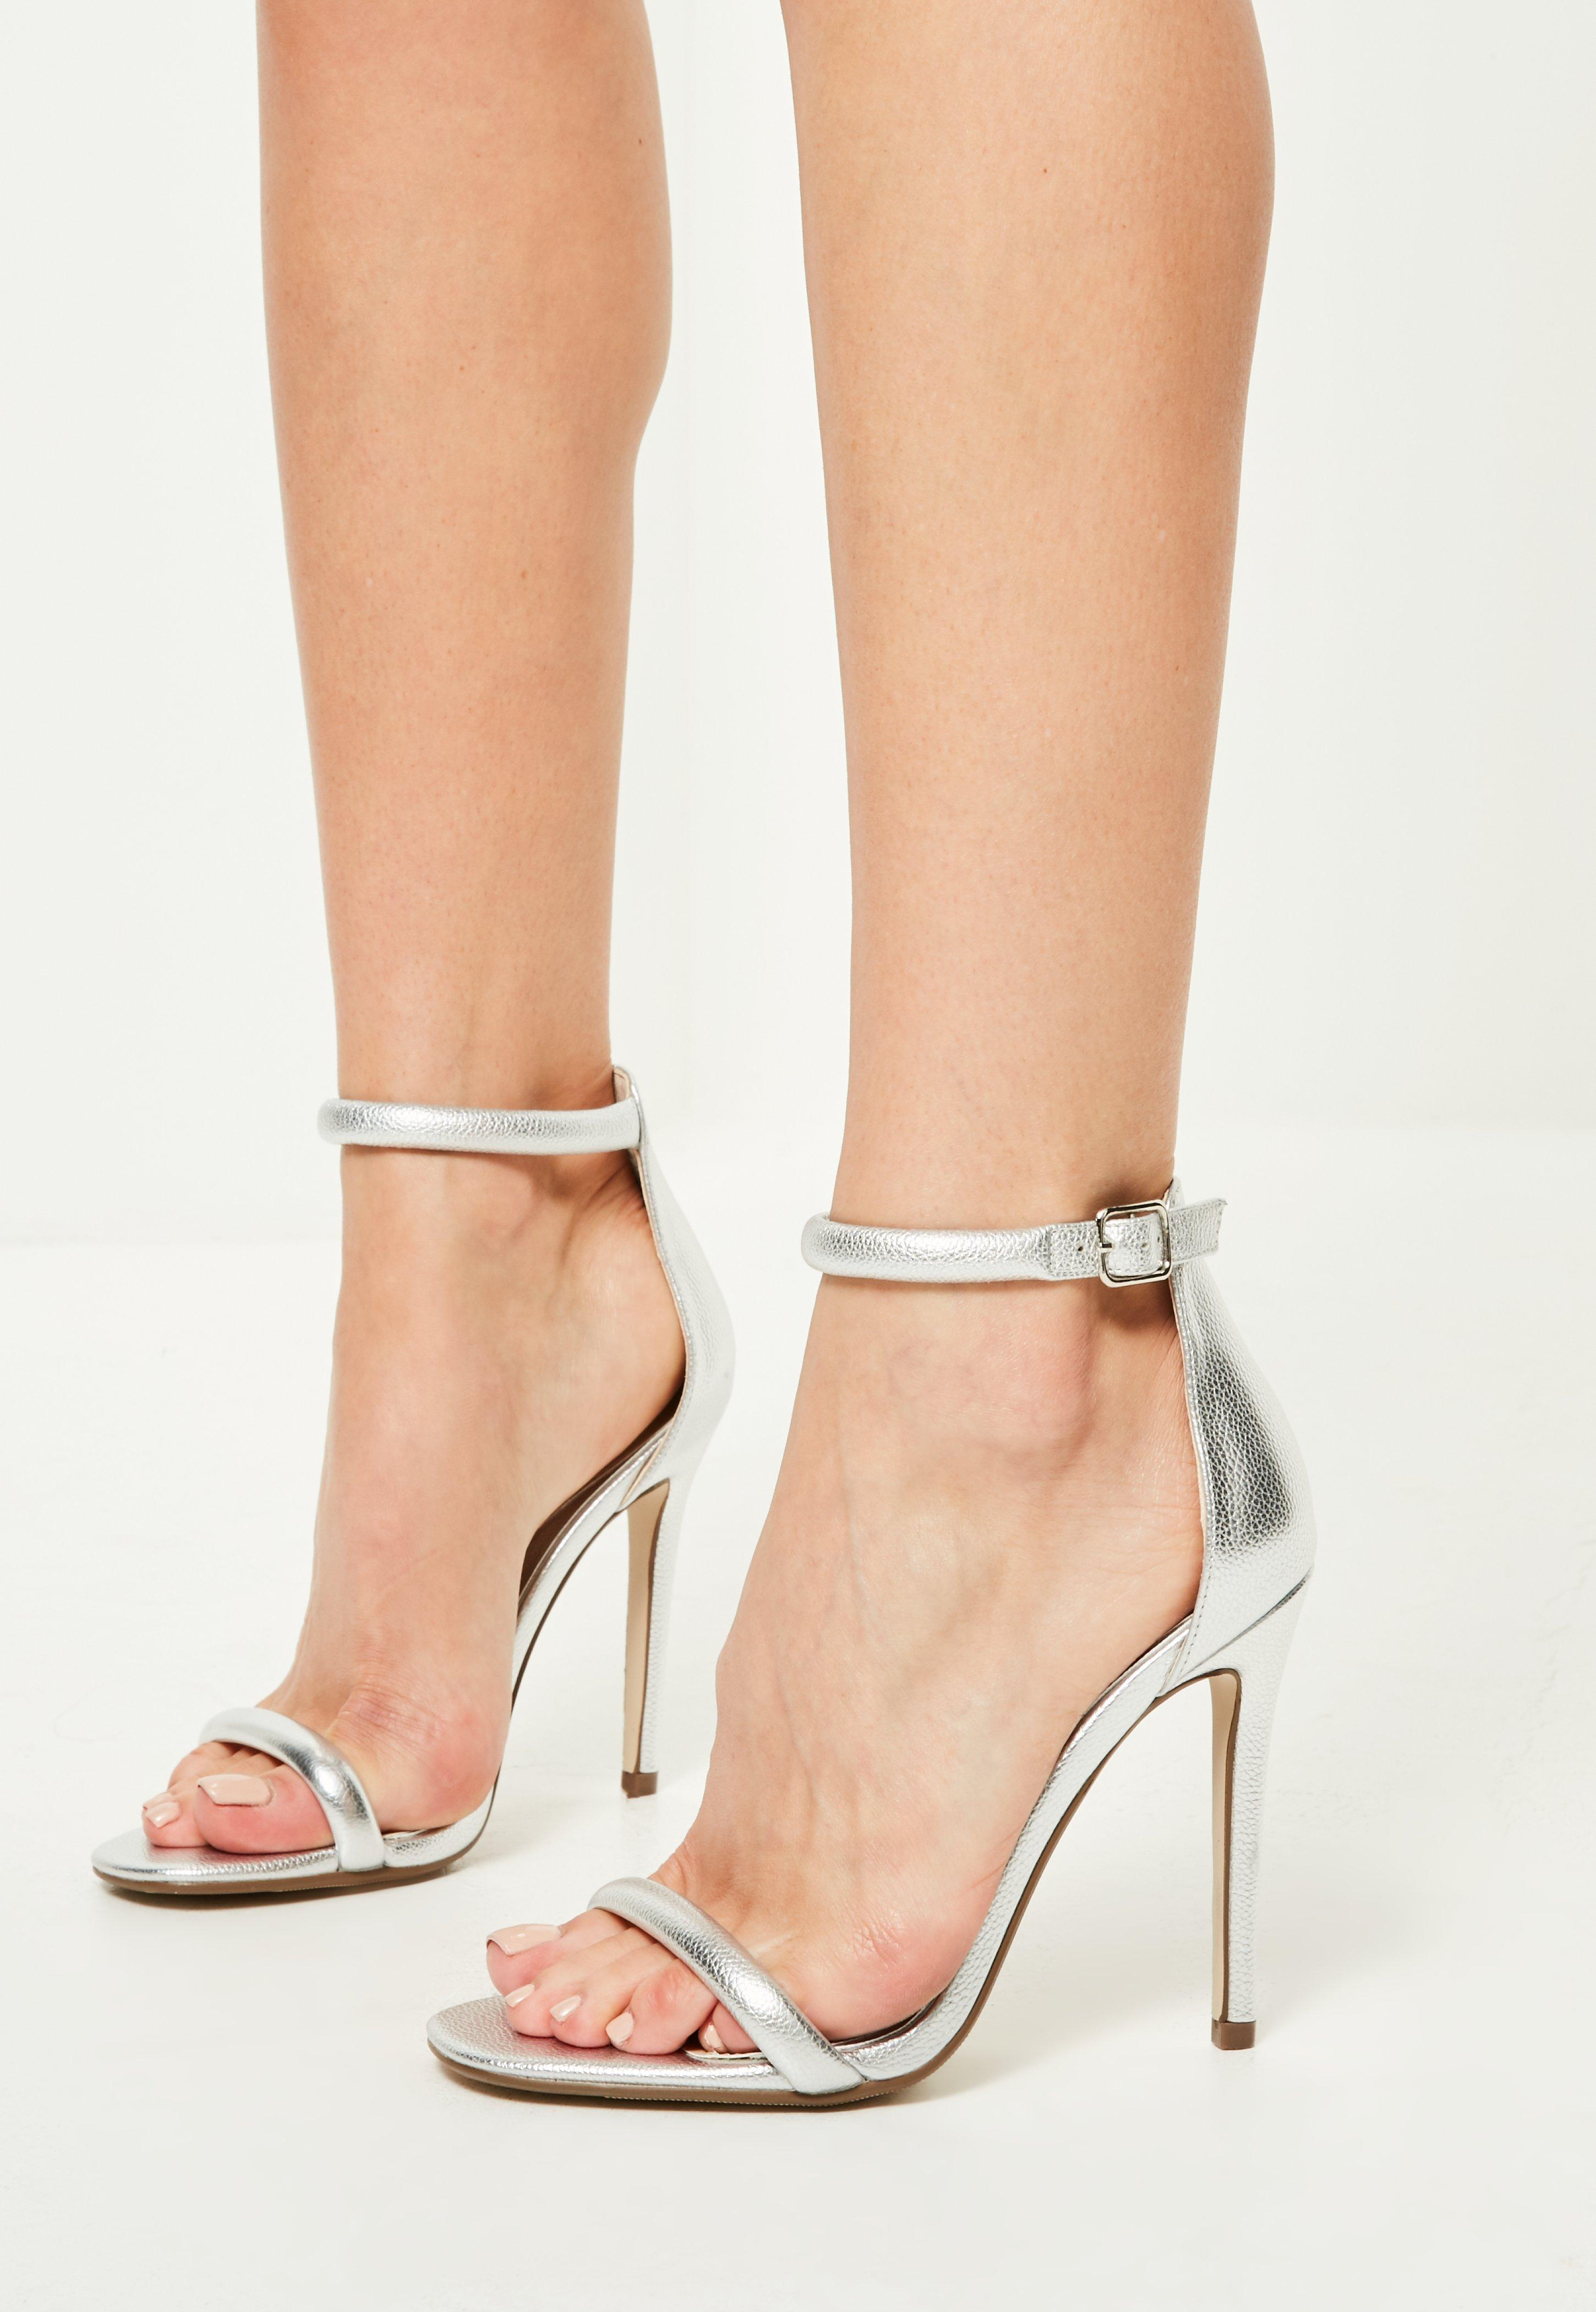 Barely There Heeled Sandals - Silver Missguided Kfkxh